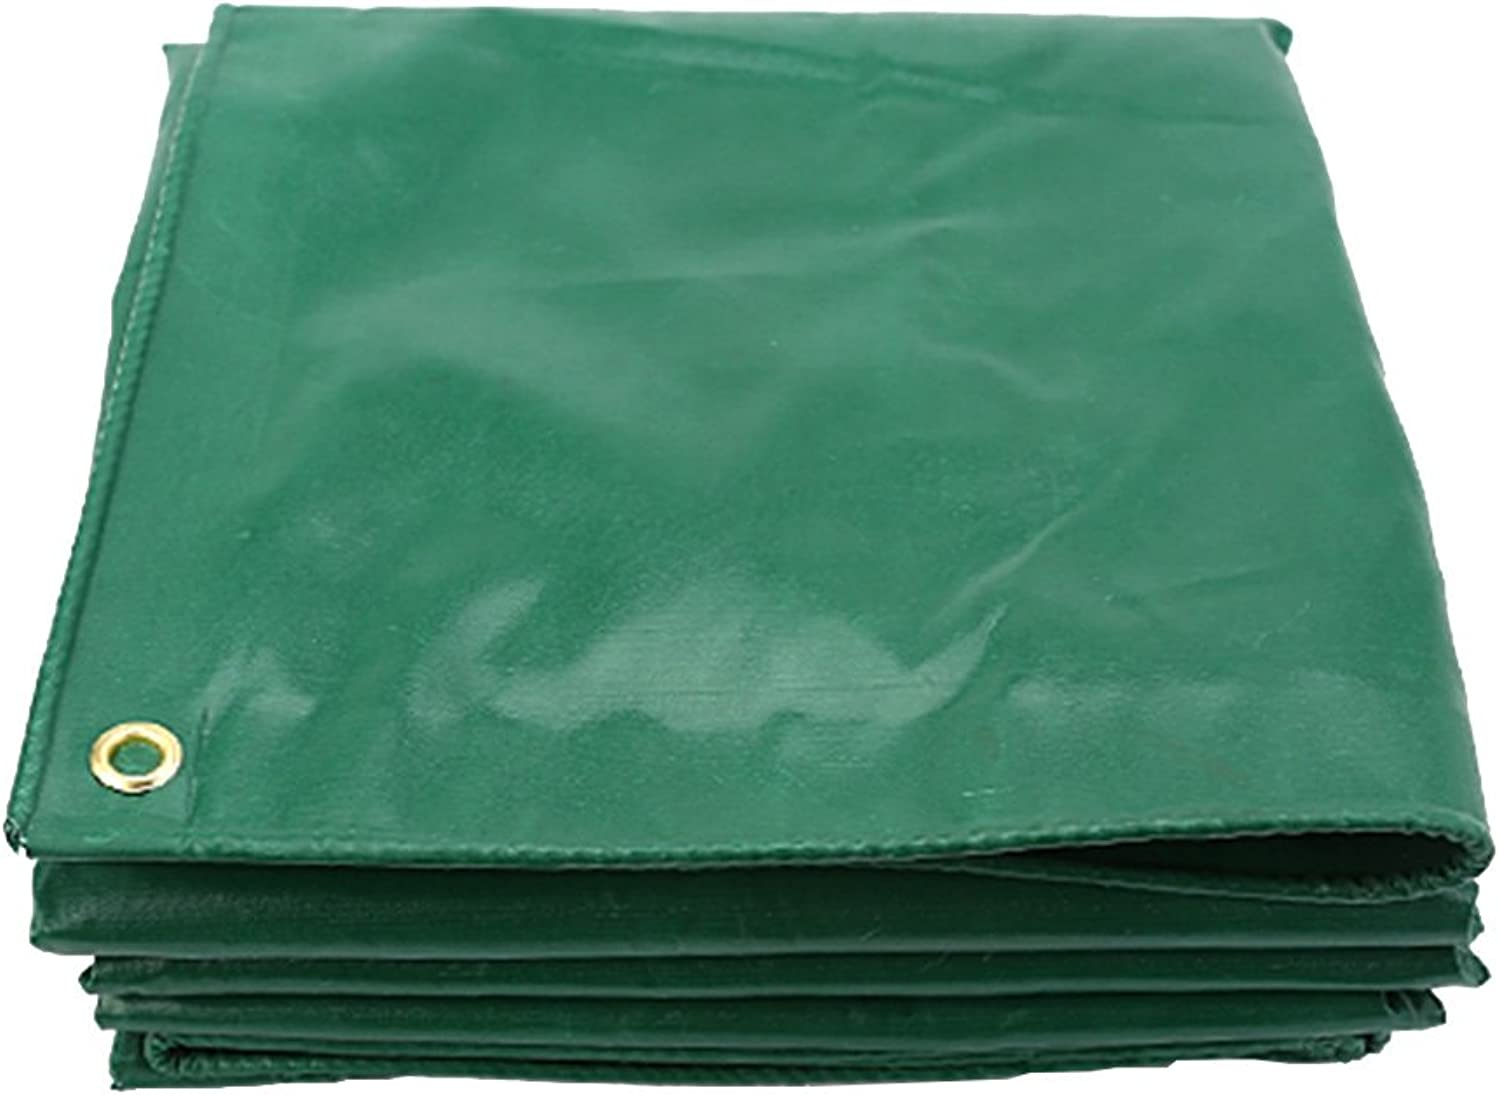 LIANGLIANG Tarpaulin Waterproof Outdoor Rainproof Shading Durable Foldable Tarpaulin with Metal Hole Eye PVC Plastic, 11 Sizes